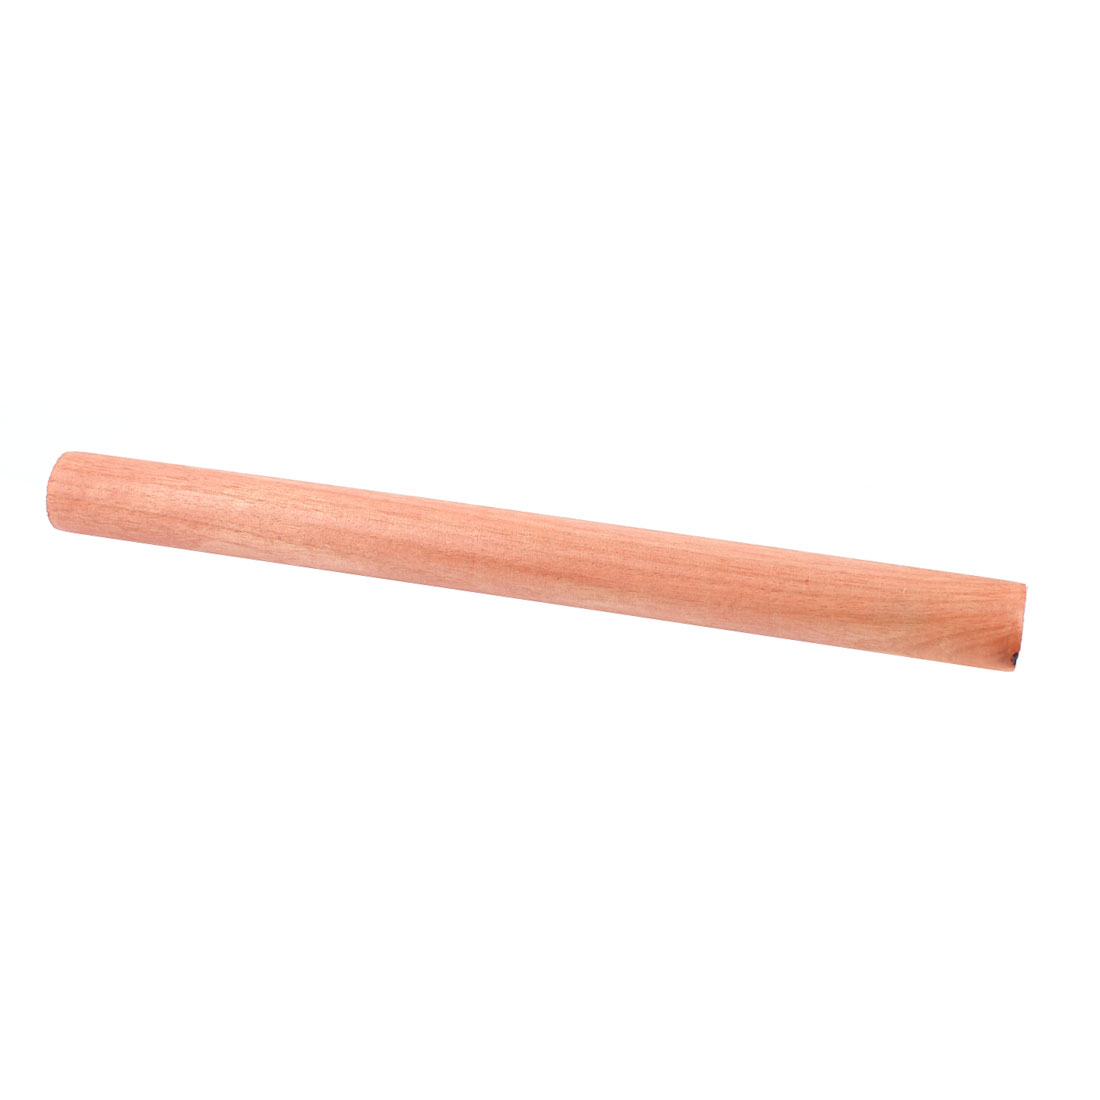 "14.6"" Long 1.3"" Dia Round Wood Kitchen Dough Pastry Rolling Pin Roller"